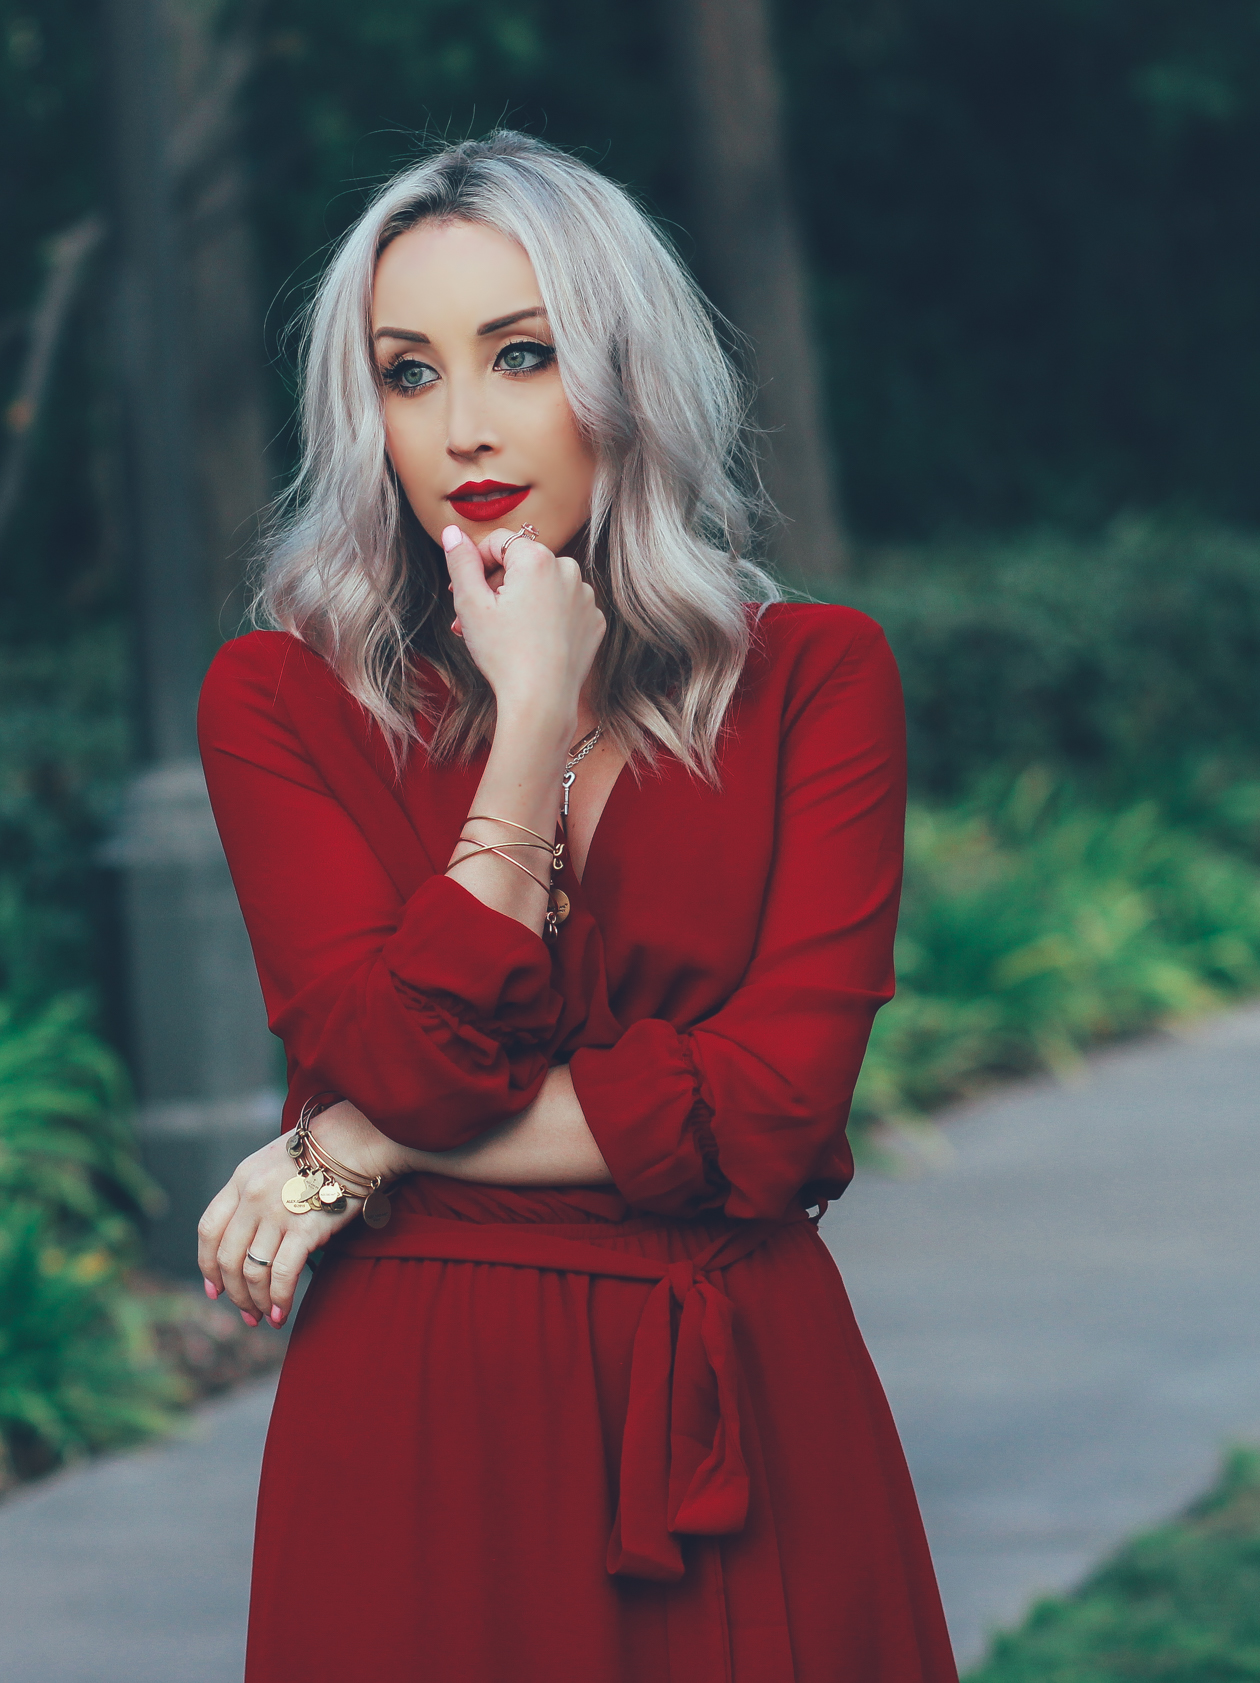 15 Beautiful Red Dress Outfits for Valentine's Day picture